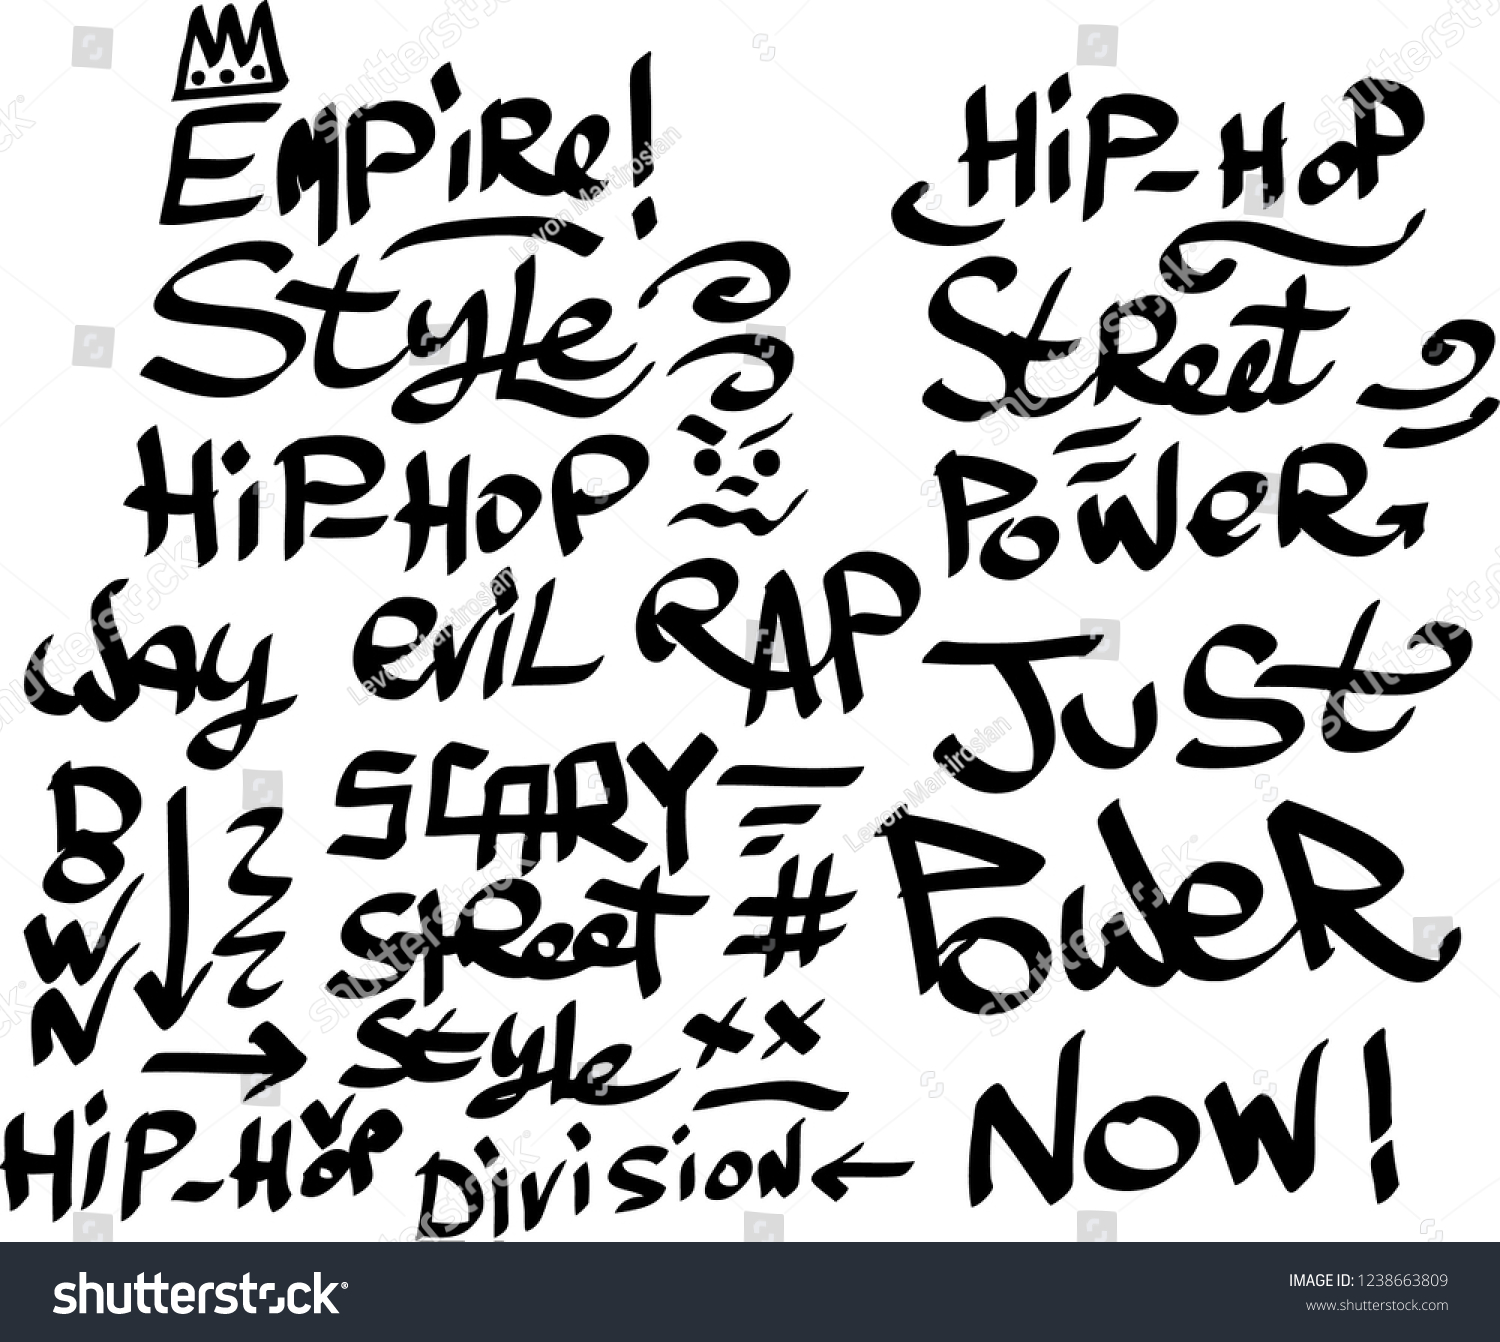 Many graffiti tags on a white background vector art